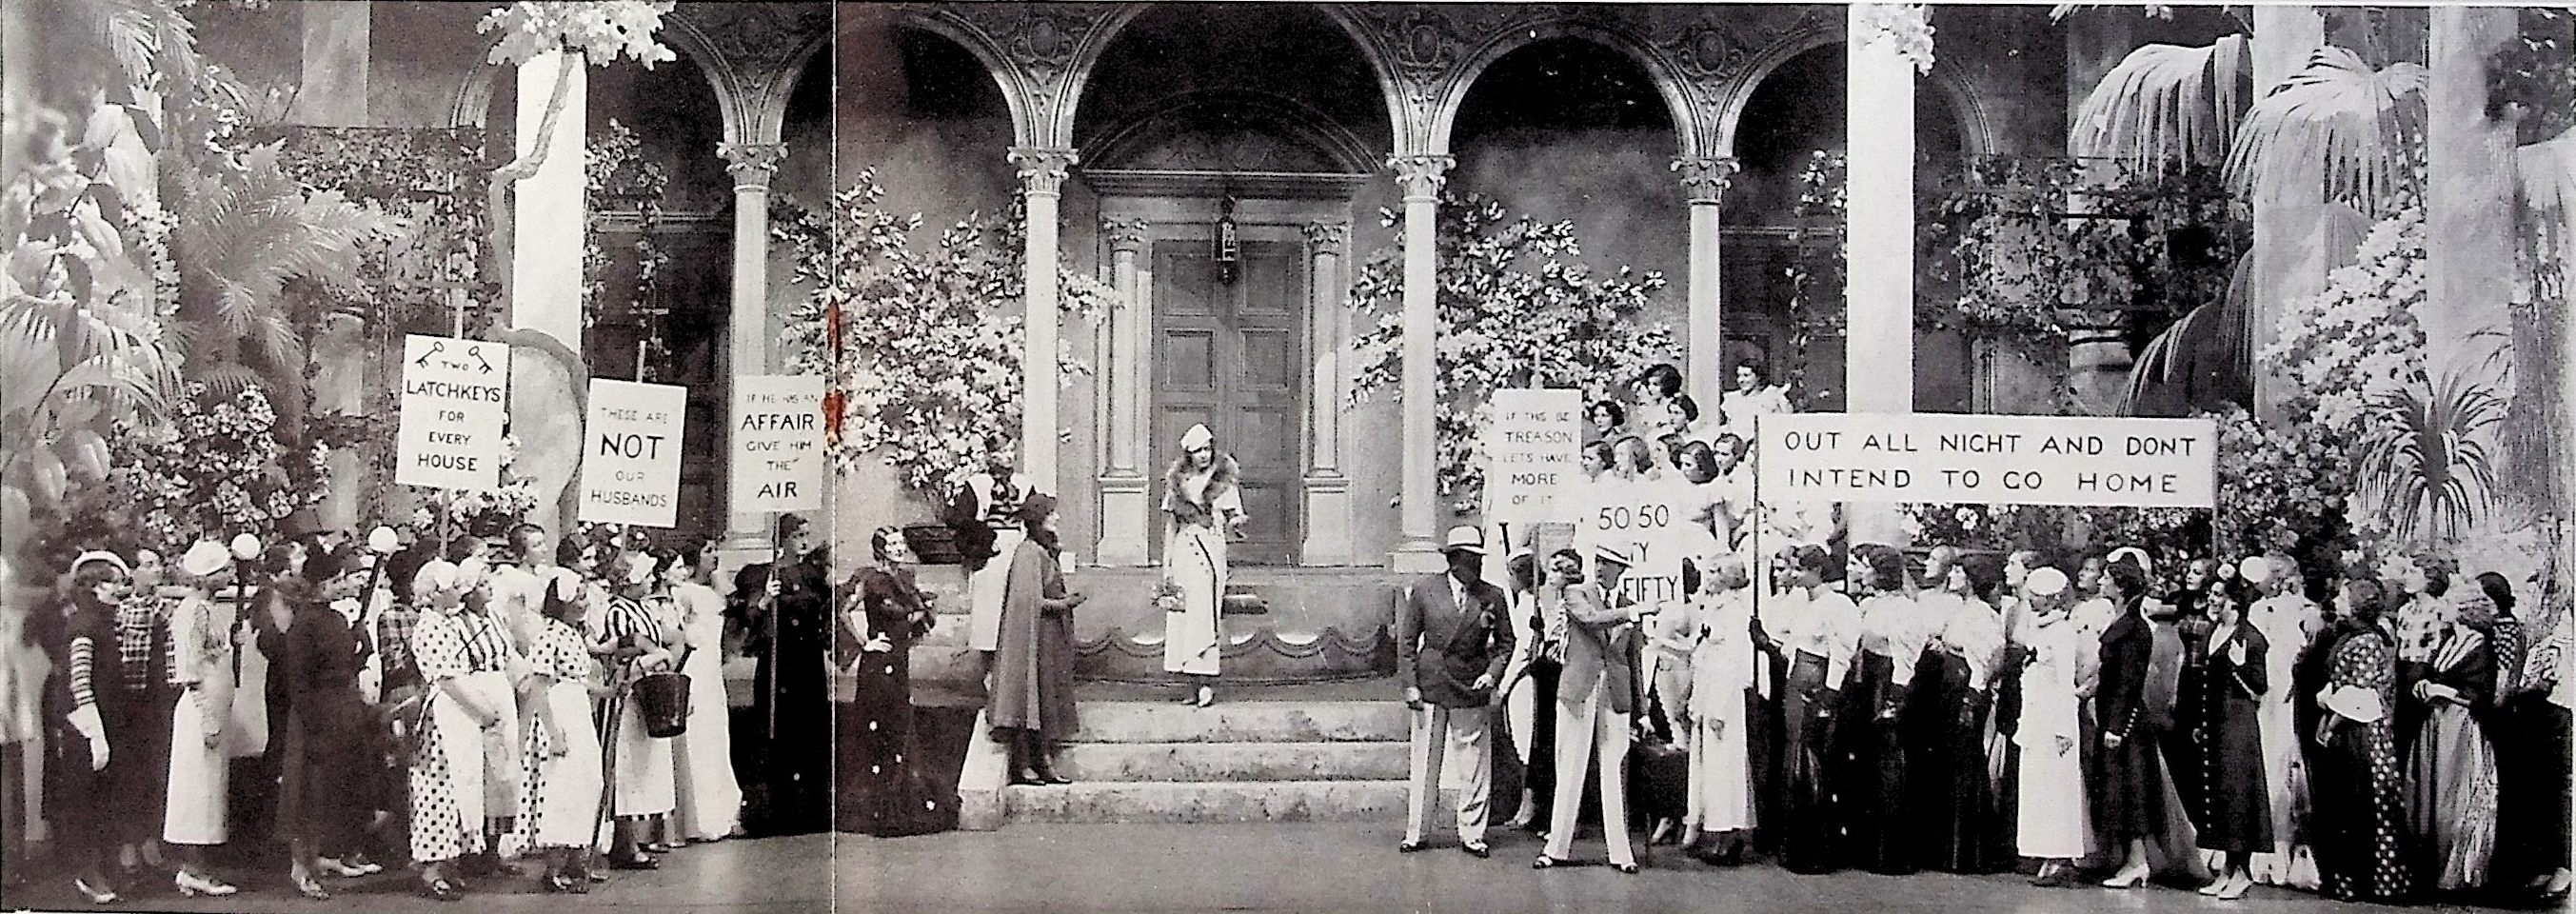 "Admirers of the Marquise's actions gather in from of her house in support in act 3 of ""Ball at the Savoy."" (Photo: Thomas Krebs Archive)"